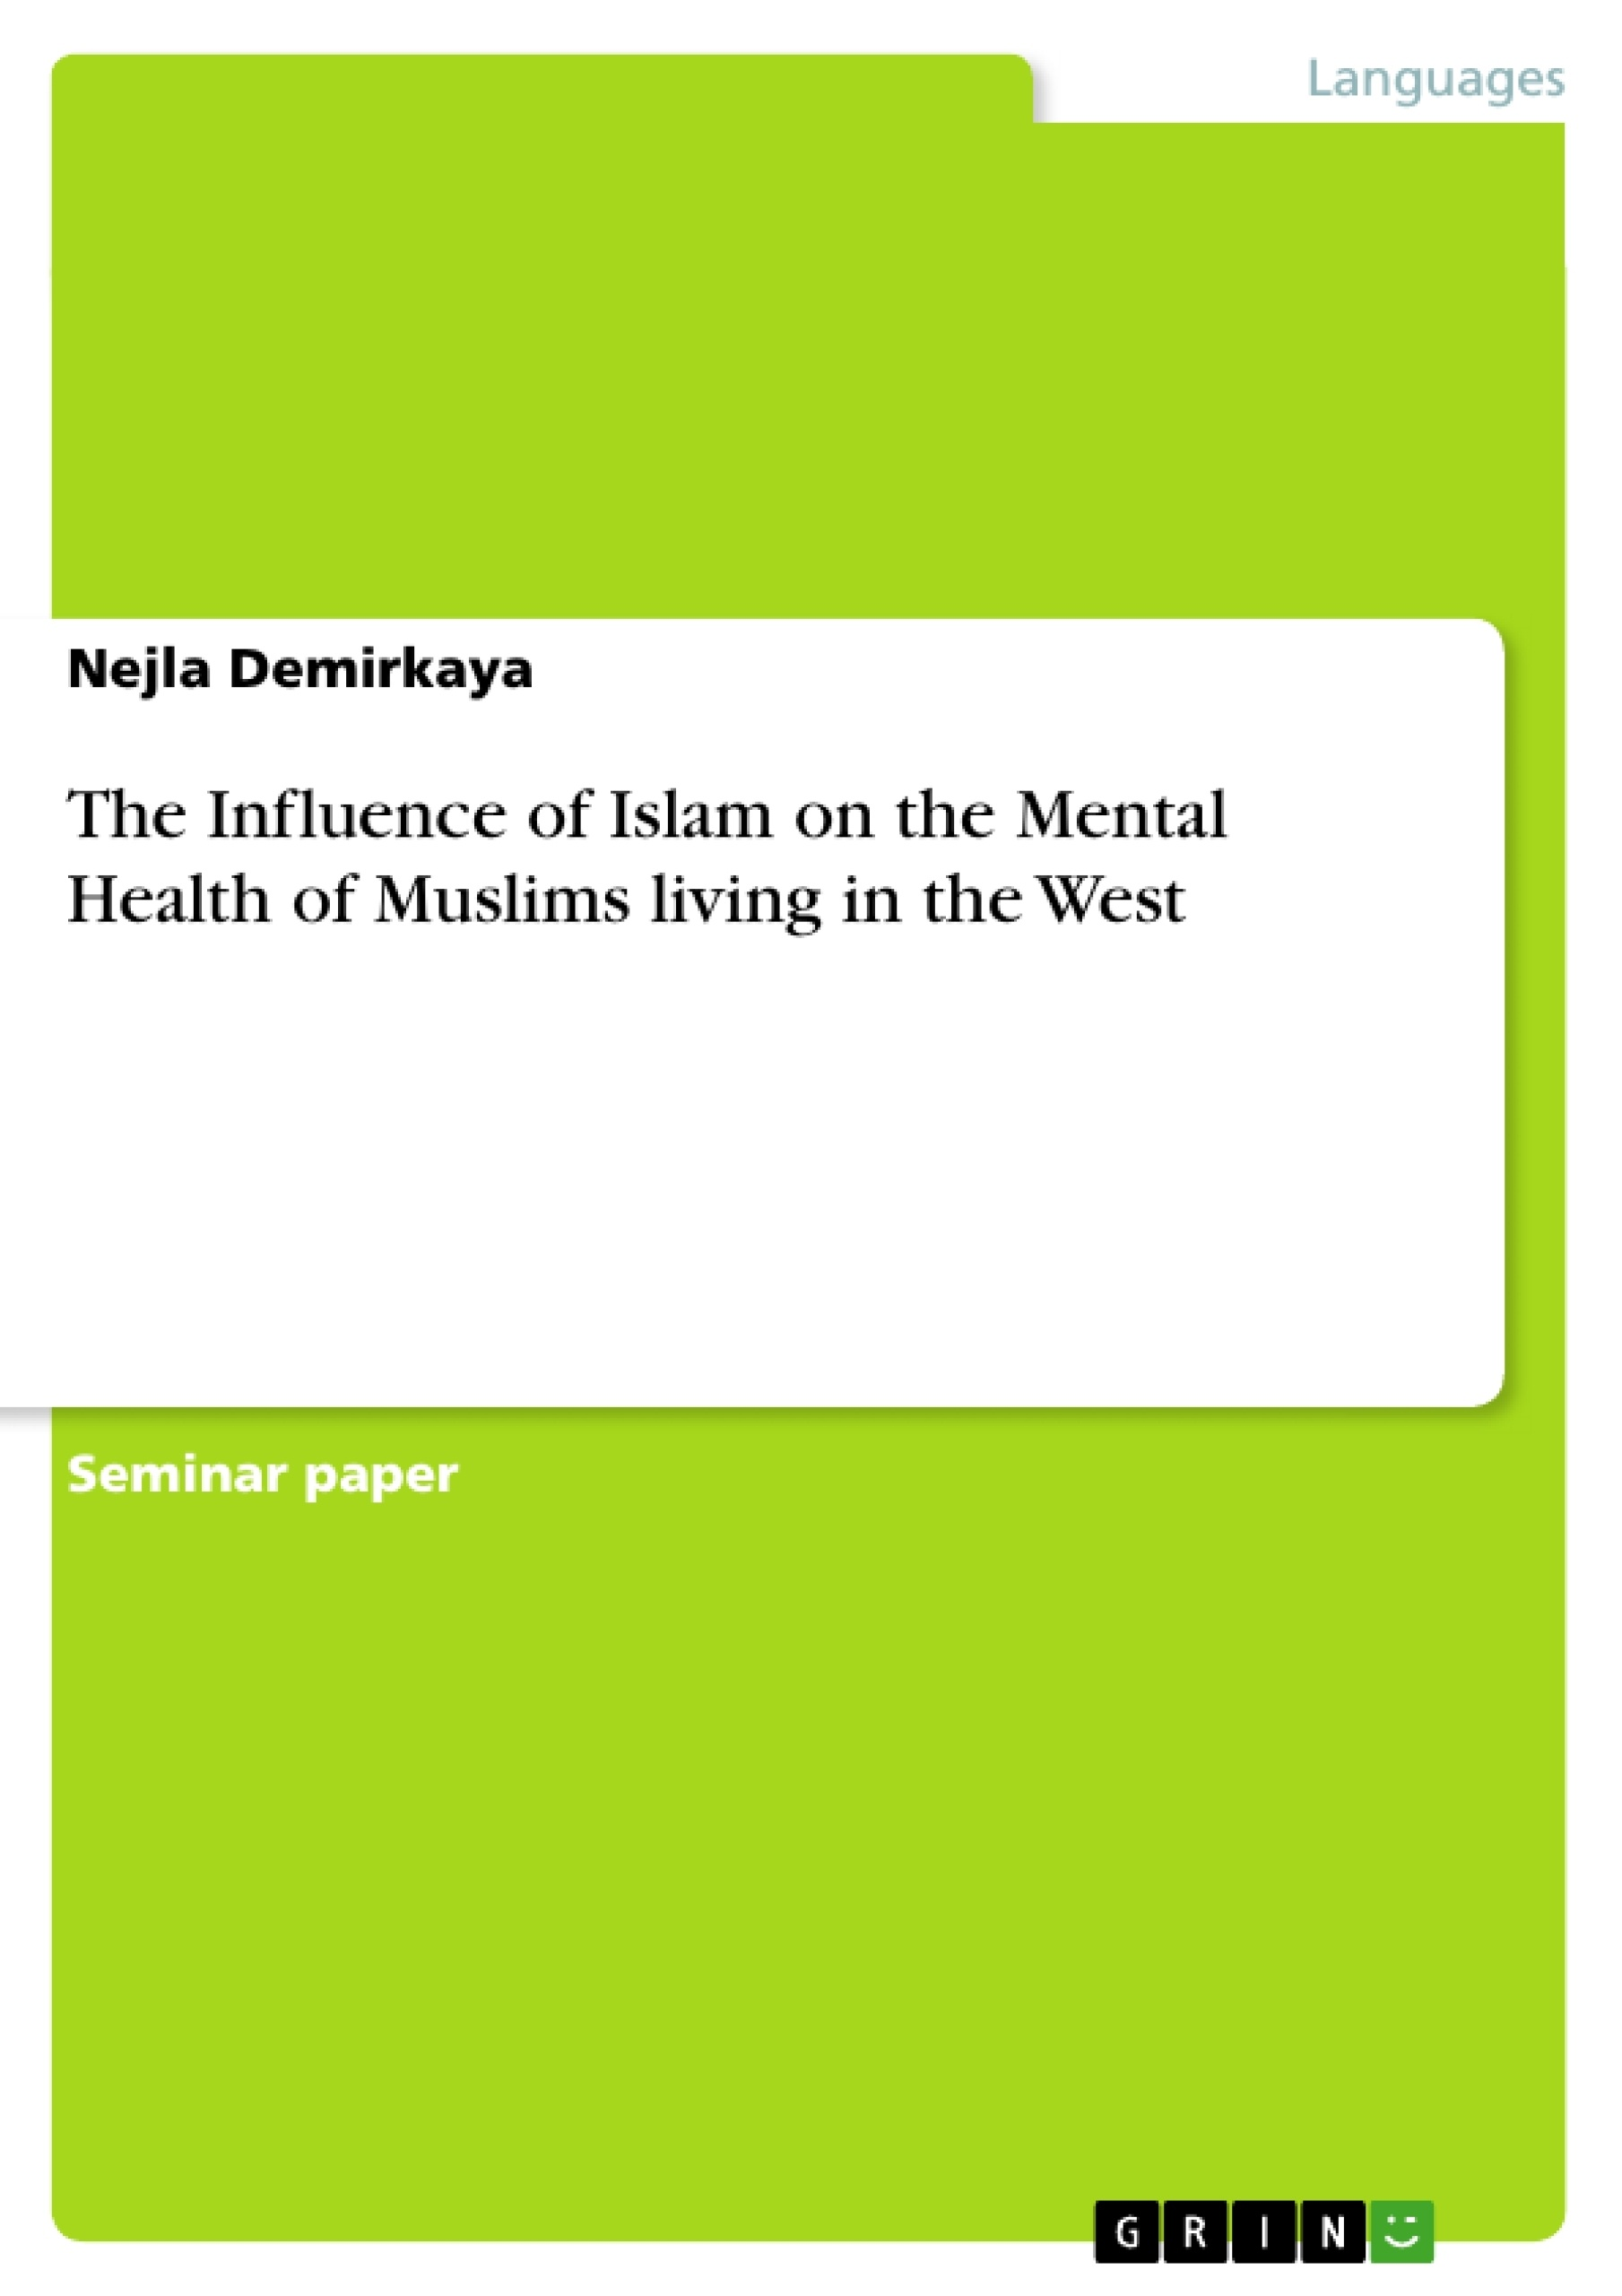 Title: The Influence of Islam on the Mental Health of Muslims living in the West